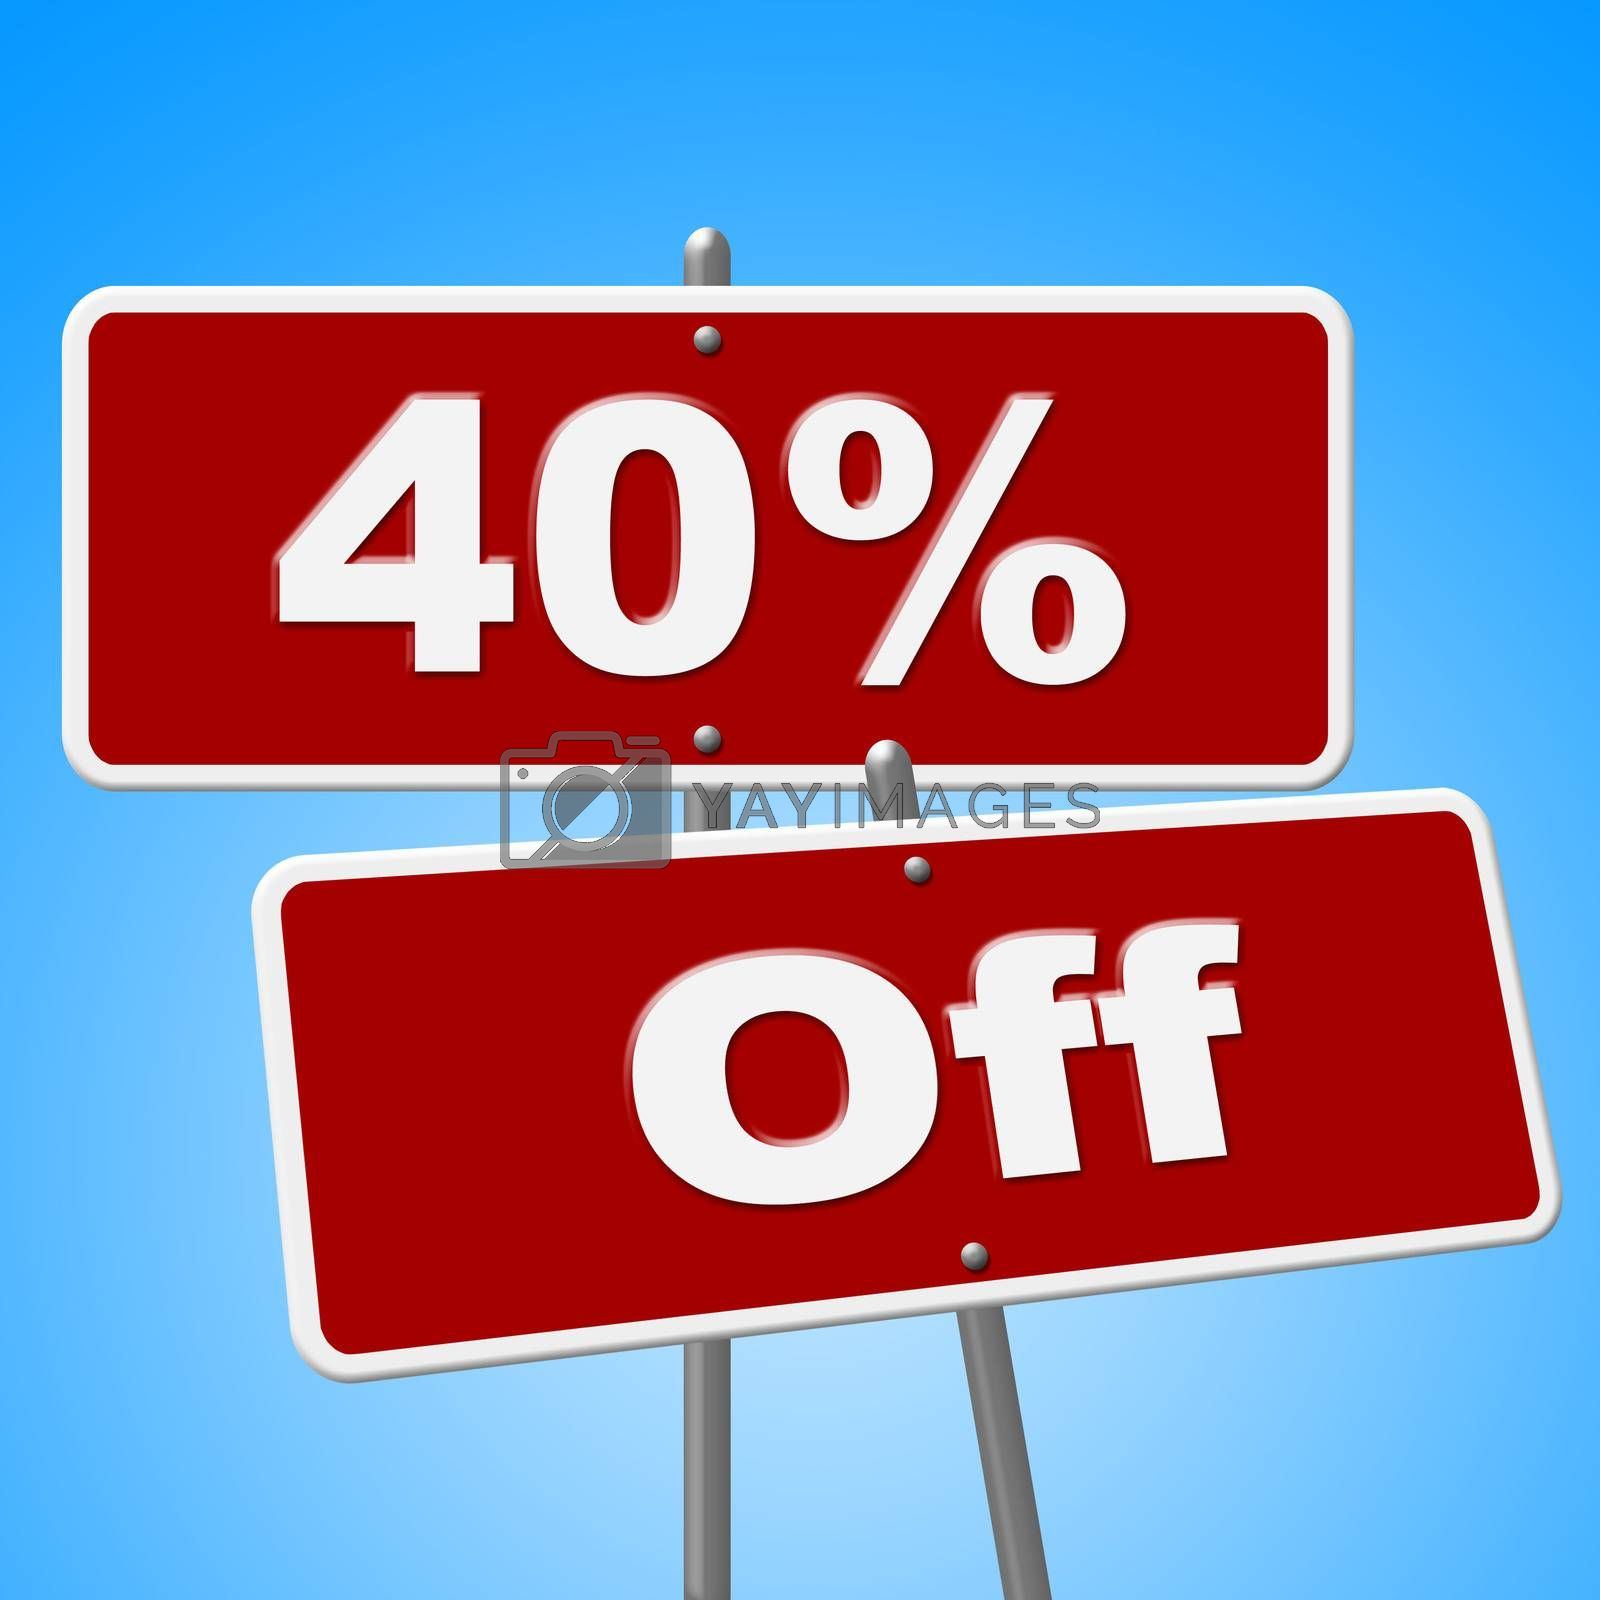 Forty Percent Off Means Signboard Savings And Signs by stuartmiles